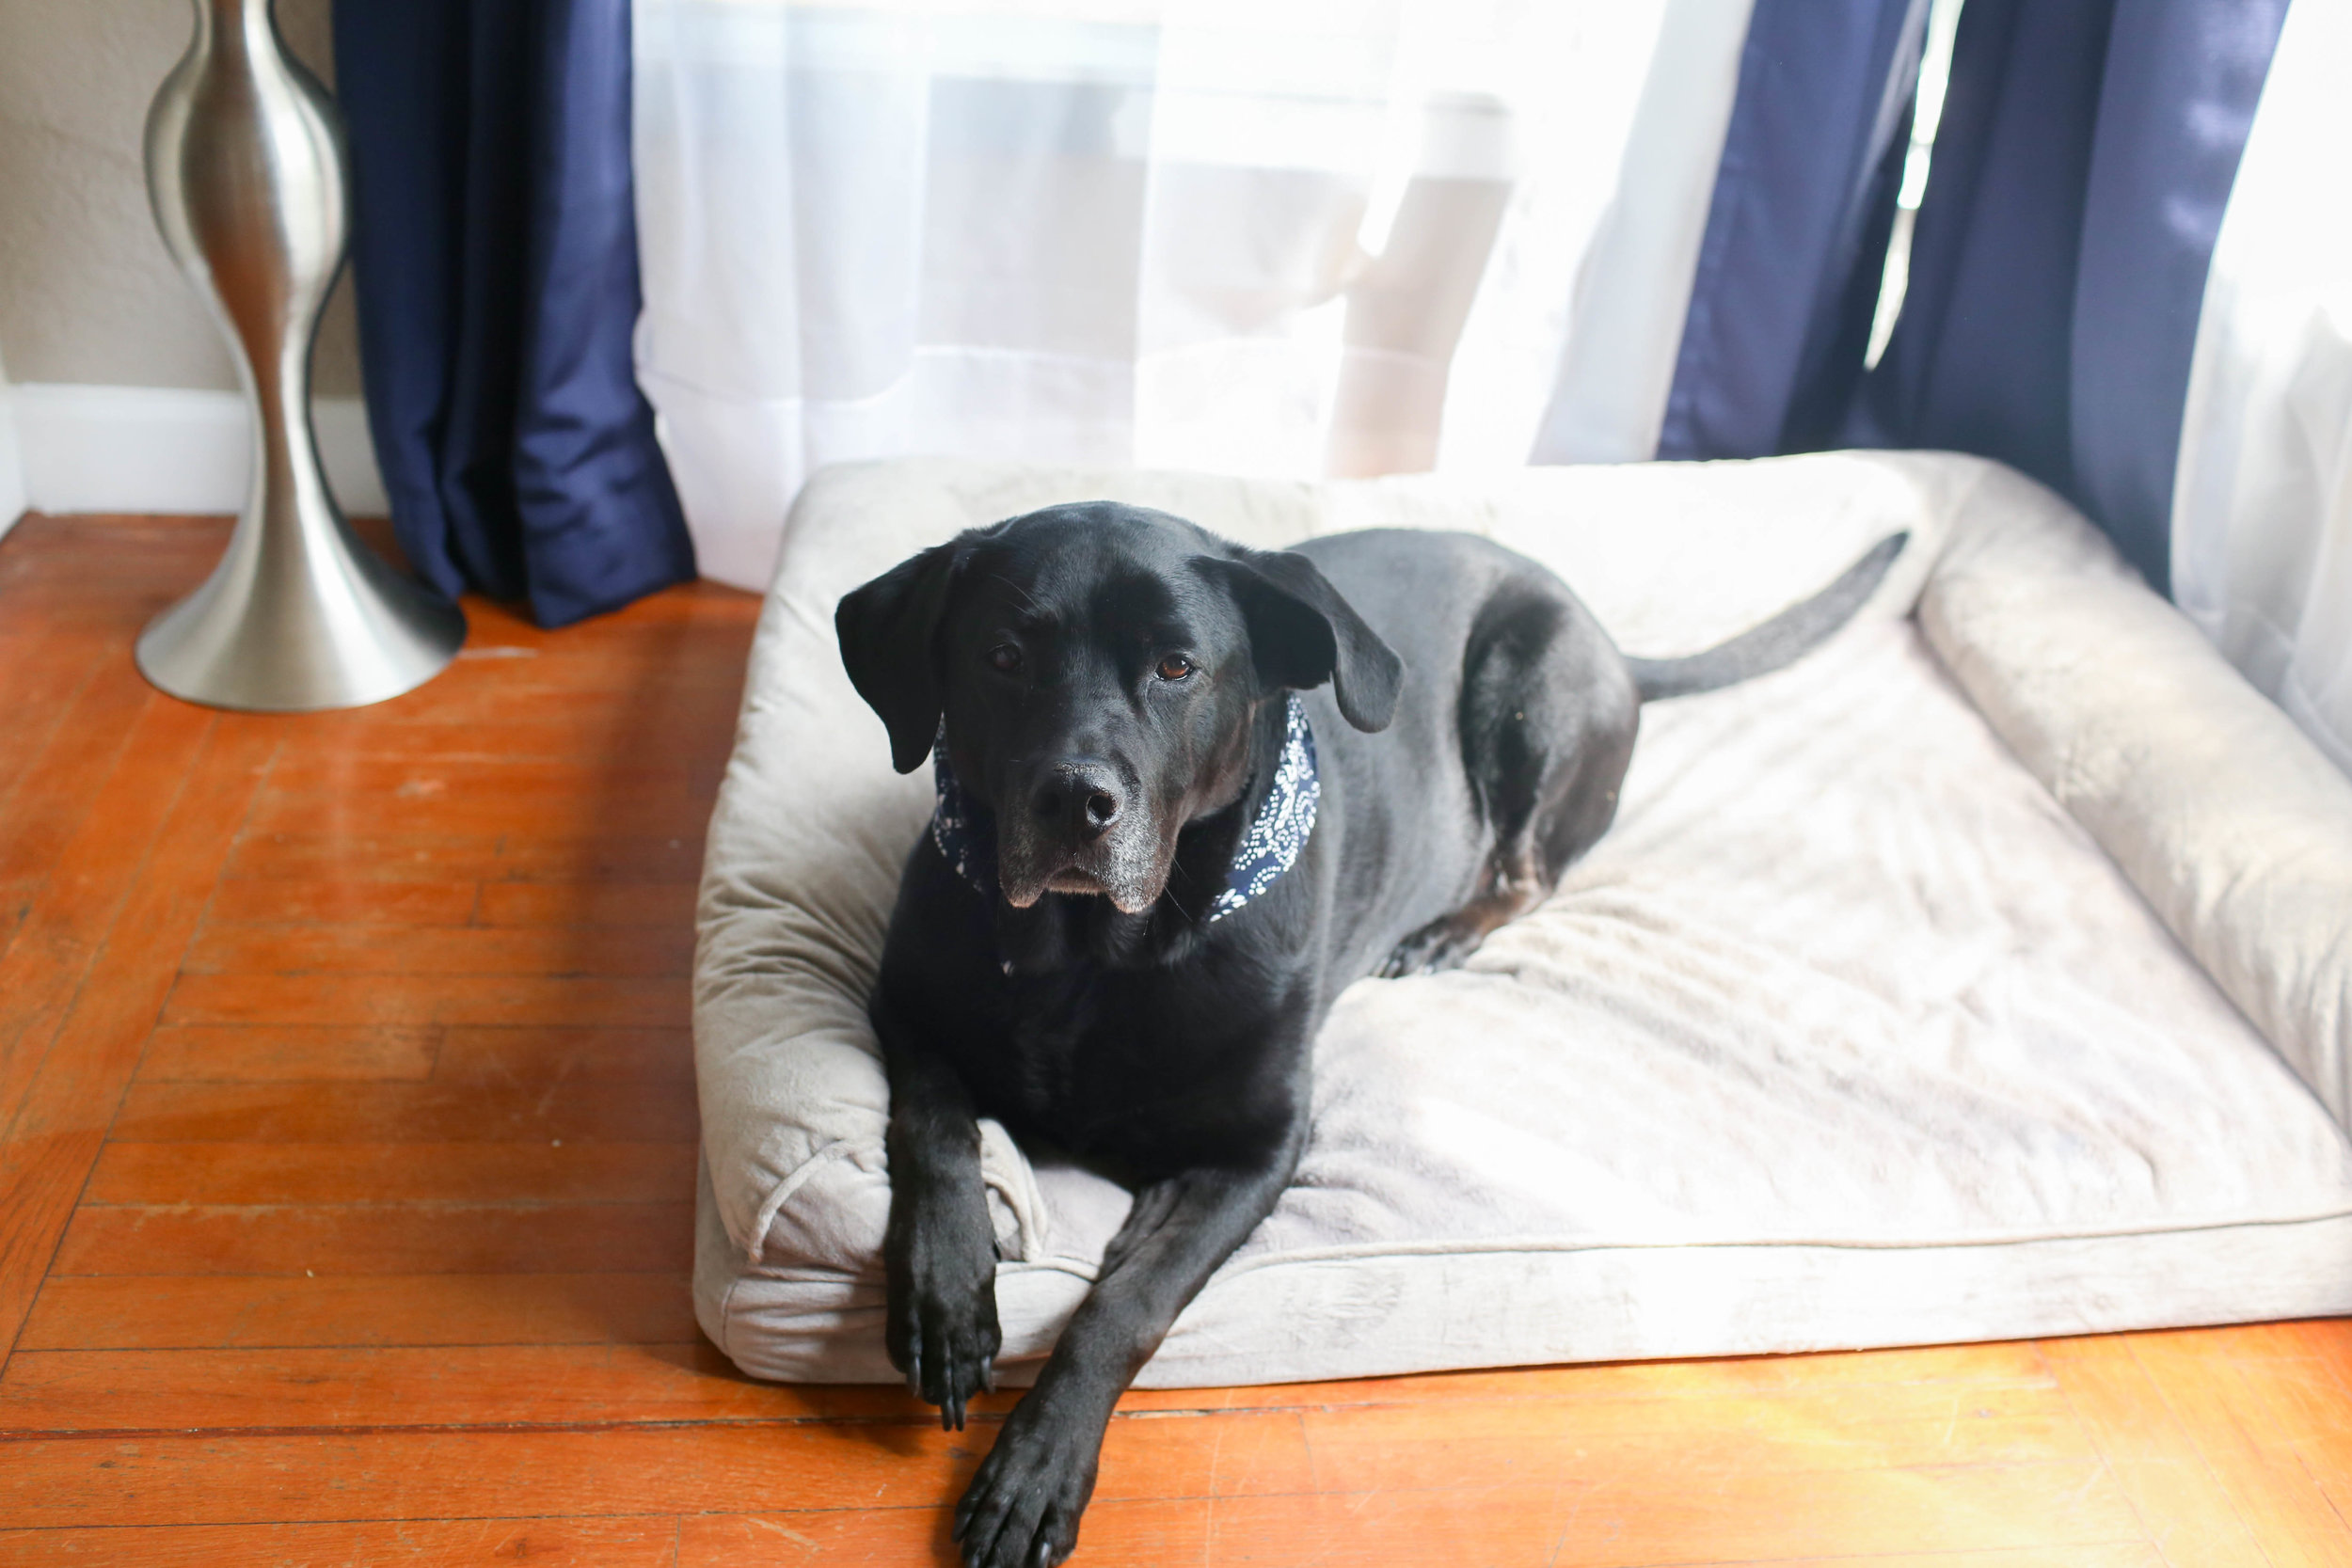 Gennifer Rose_10 Simple Ways to Prepare Your Home for a New Dog_6.jpg